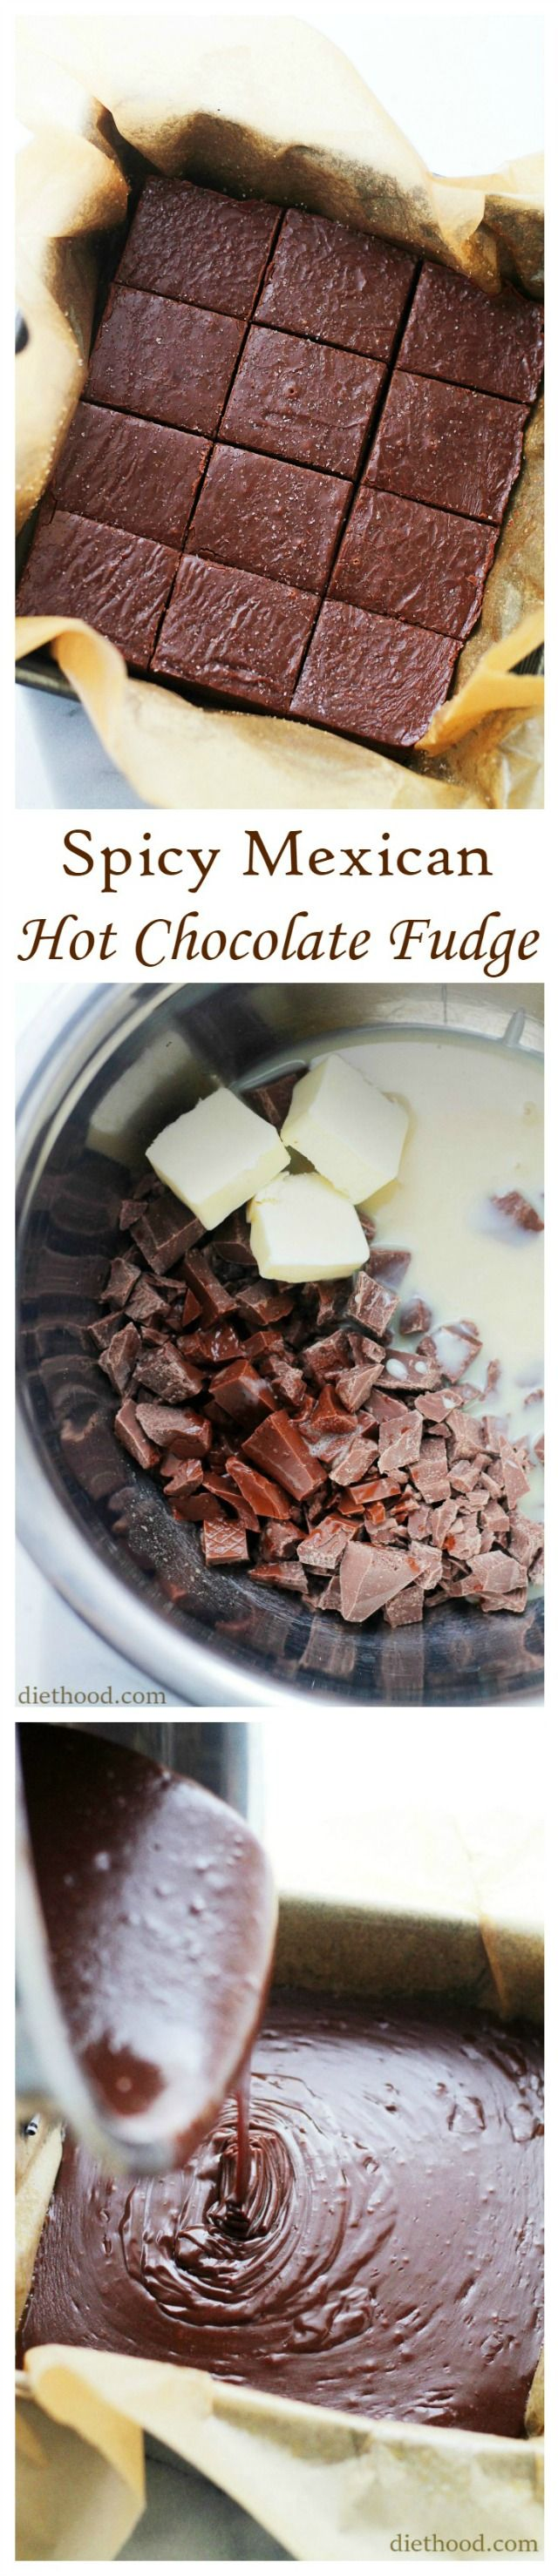 Spicy Mexican Hot Chocolate Fudge - With a little cayenne pepper, chili powder and lots of cinnamon, this fudge is spicy, delicious, chocolaty and EASY!